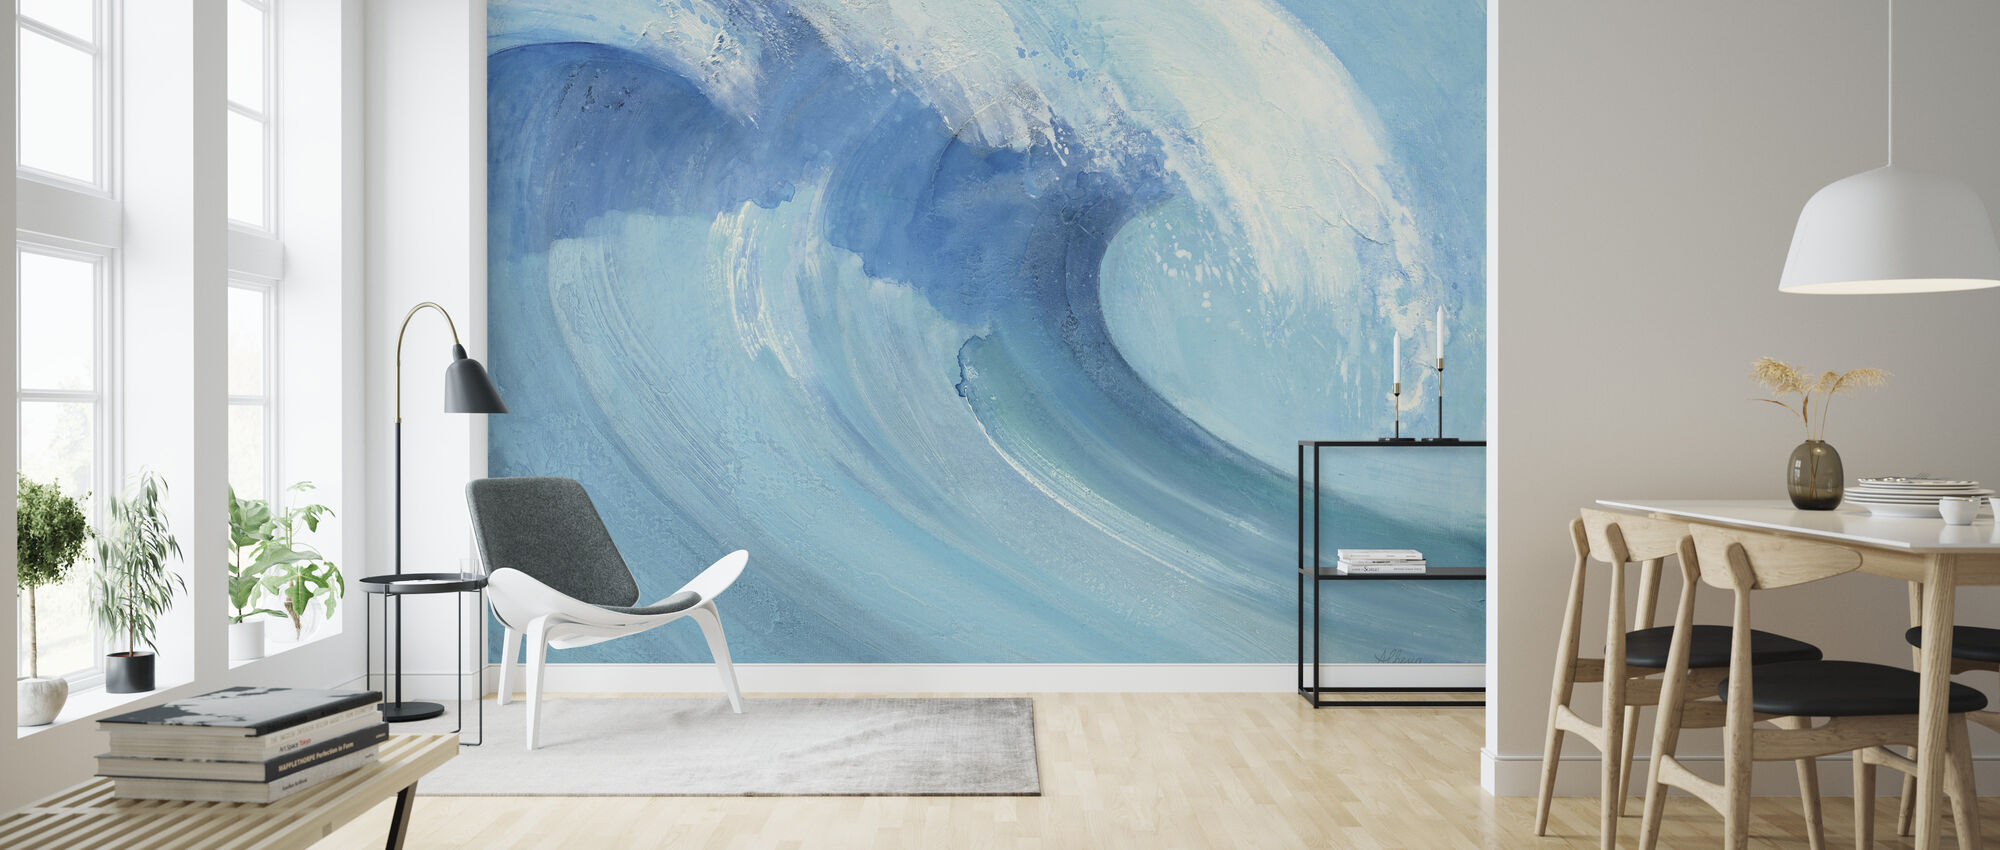 Catch a Wave - Wallpaper - Living Room